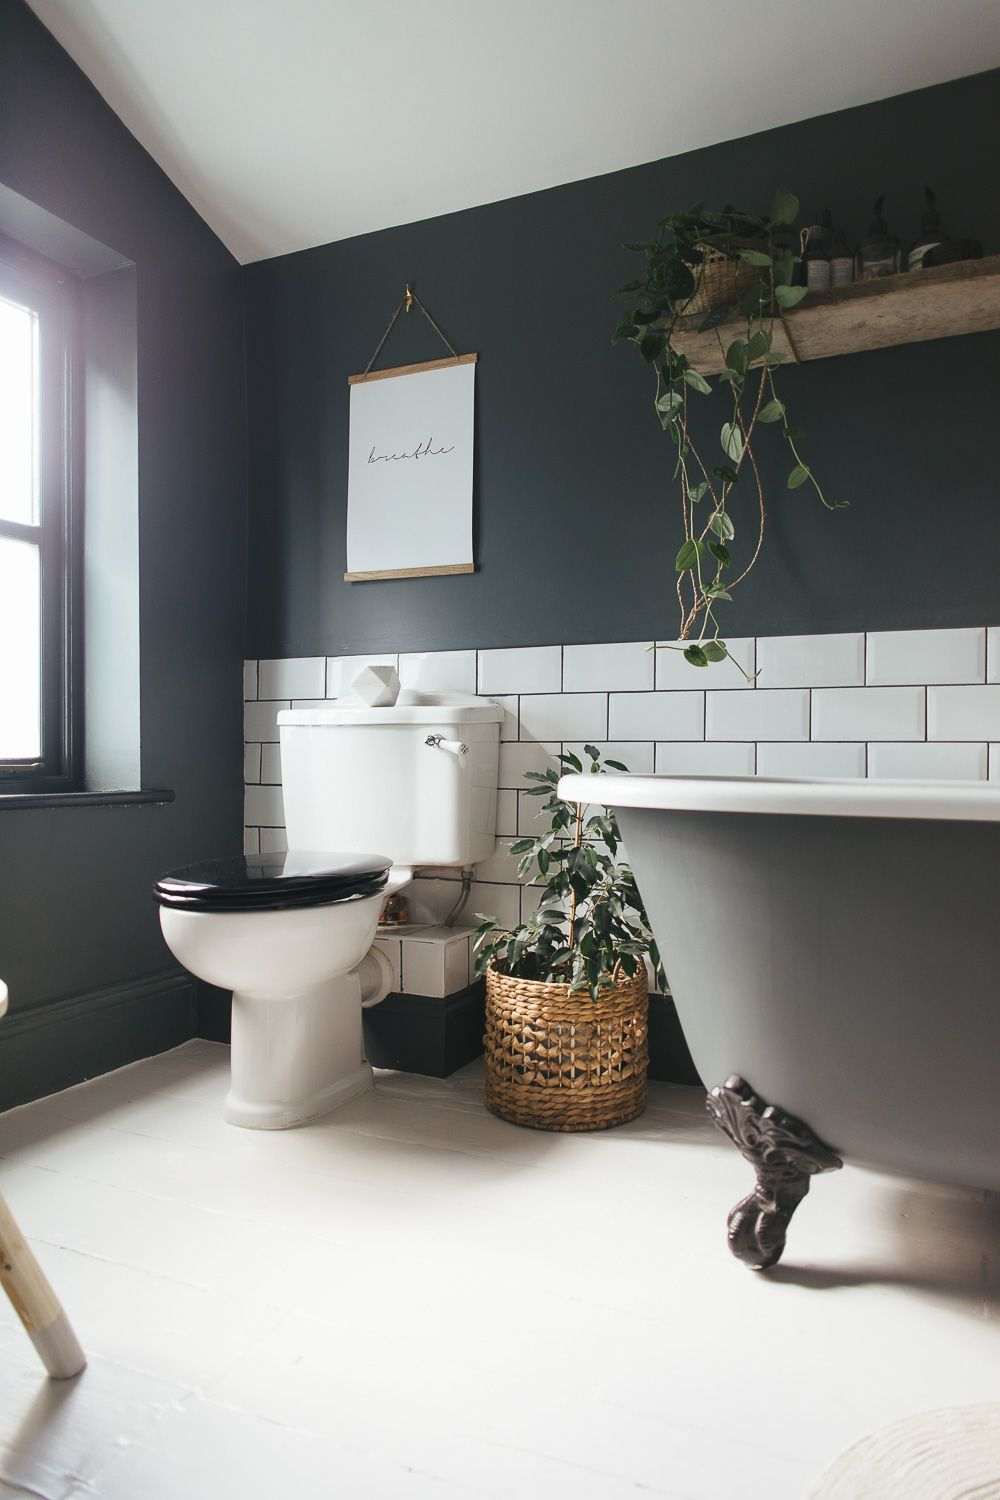 Choosing A Light Or Dark Bathroom Colour Scheme For A Small Space Easy Bathroom Makeover Bathroom Color Schemes Bathroom Inspiration